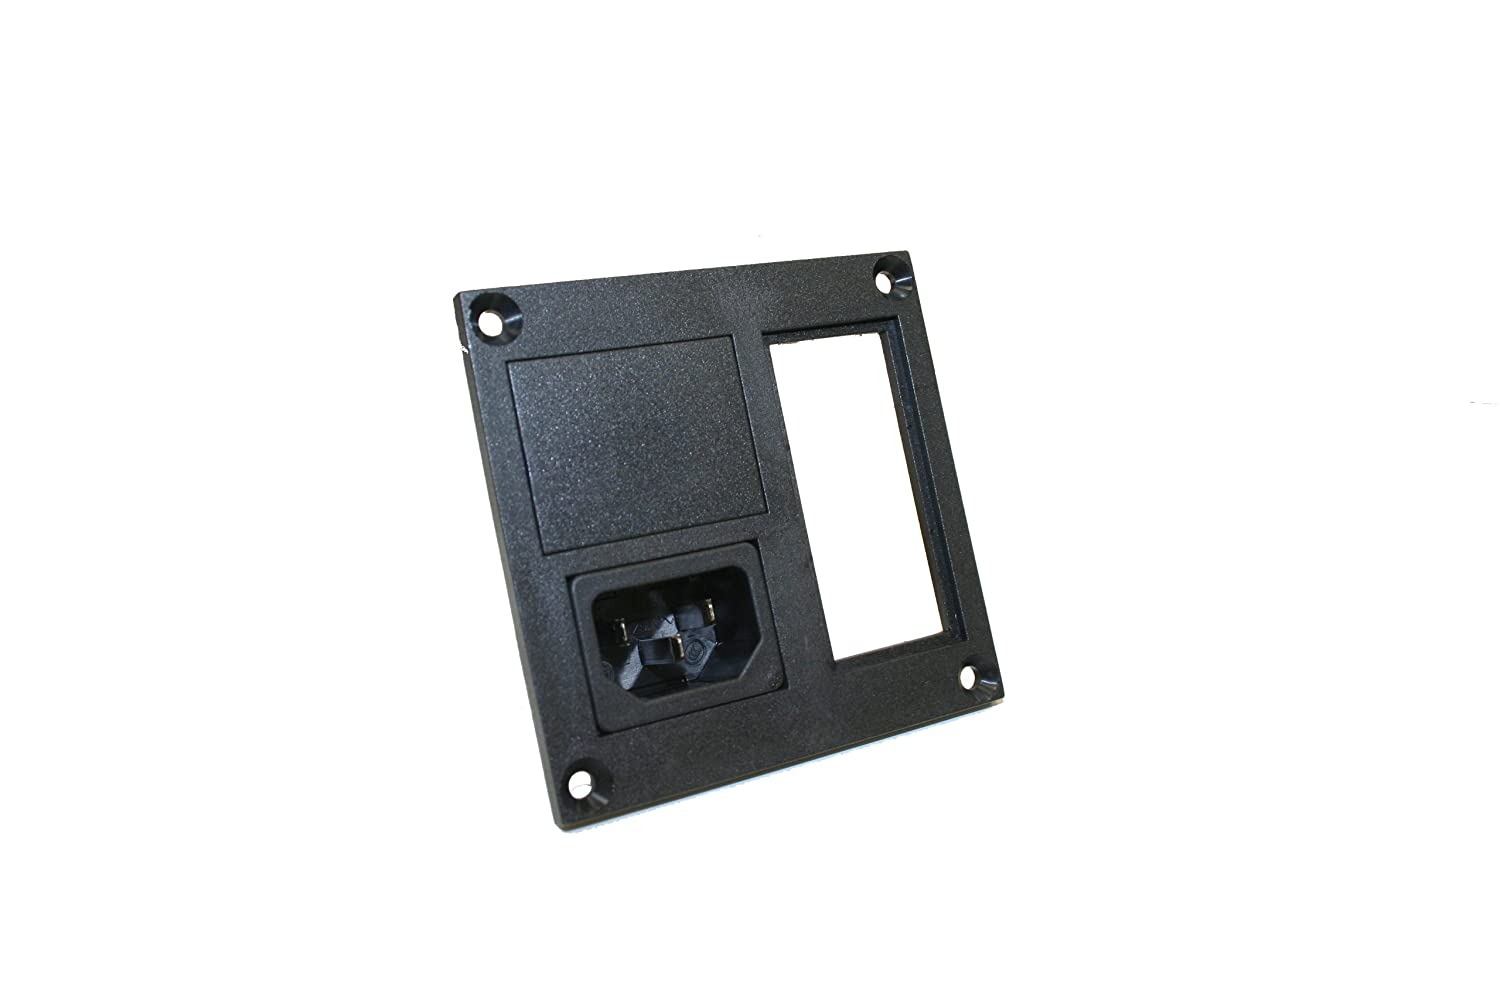 Interpower 83110160 Two Function Power Entry Module C14 Inlet 250VAC Voltage Rating 4mm Panel Thickness 10A//15A Current Rating